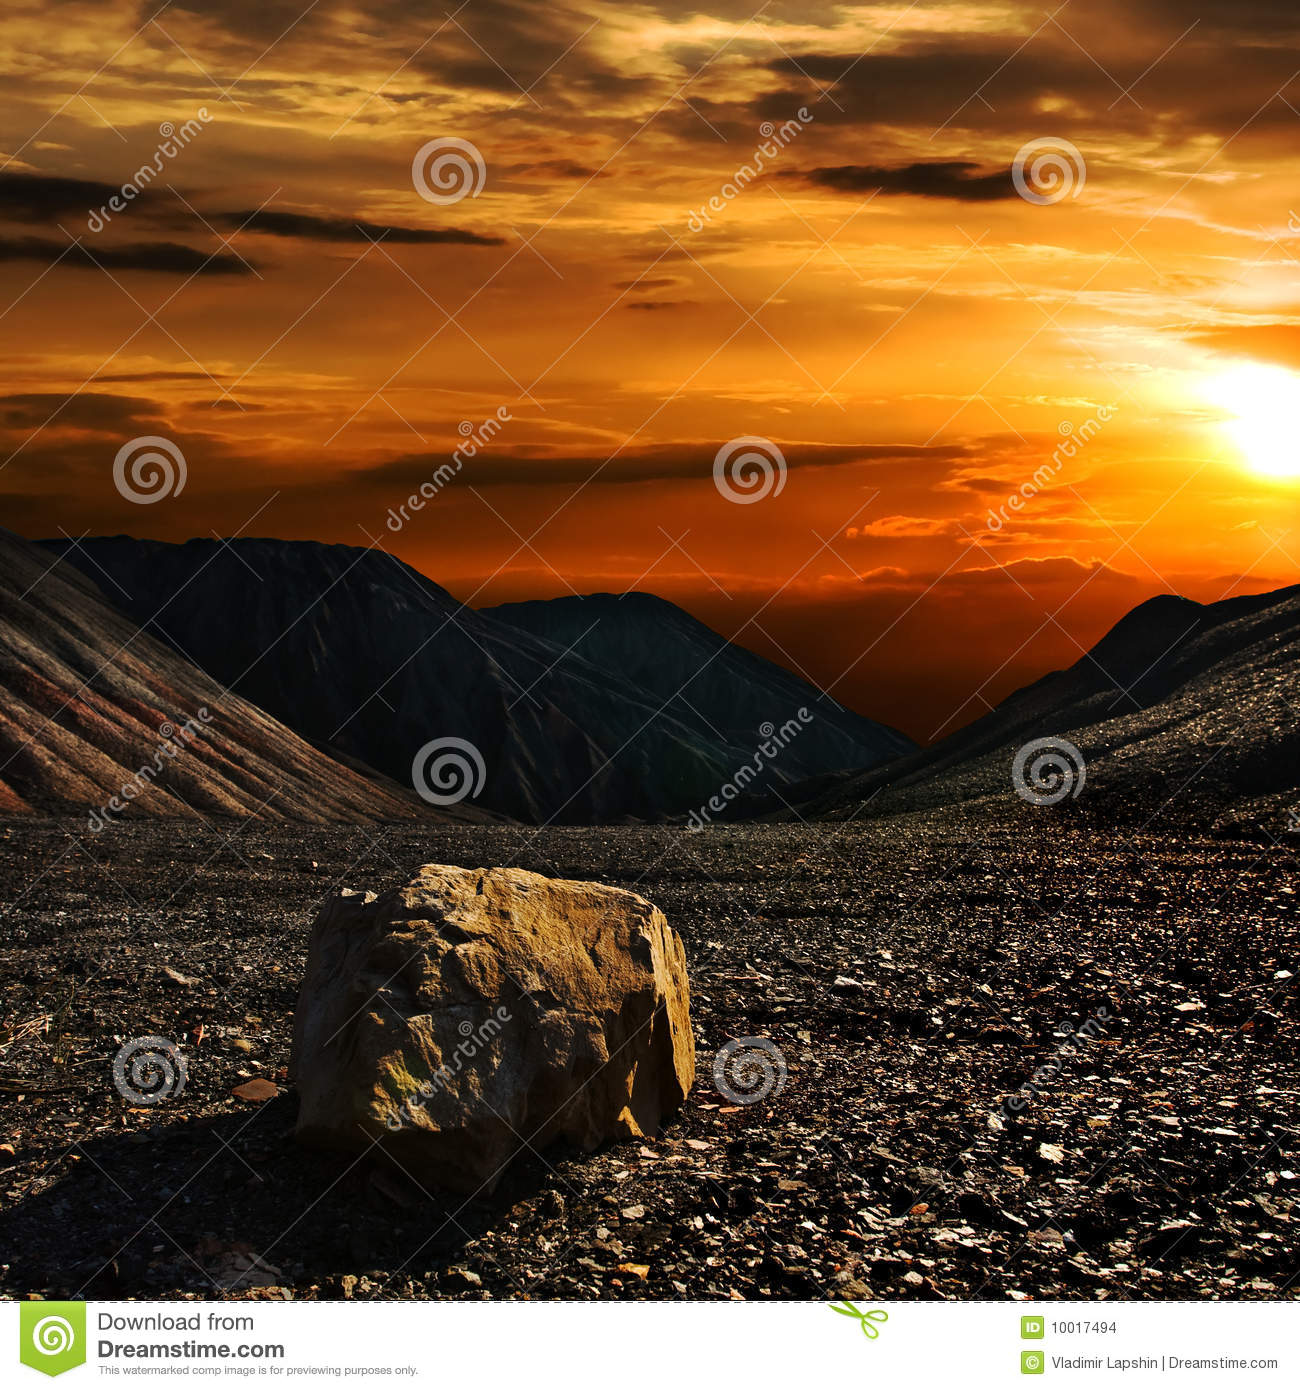 Sunset with the stone